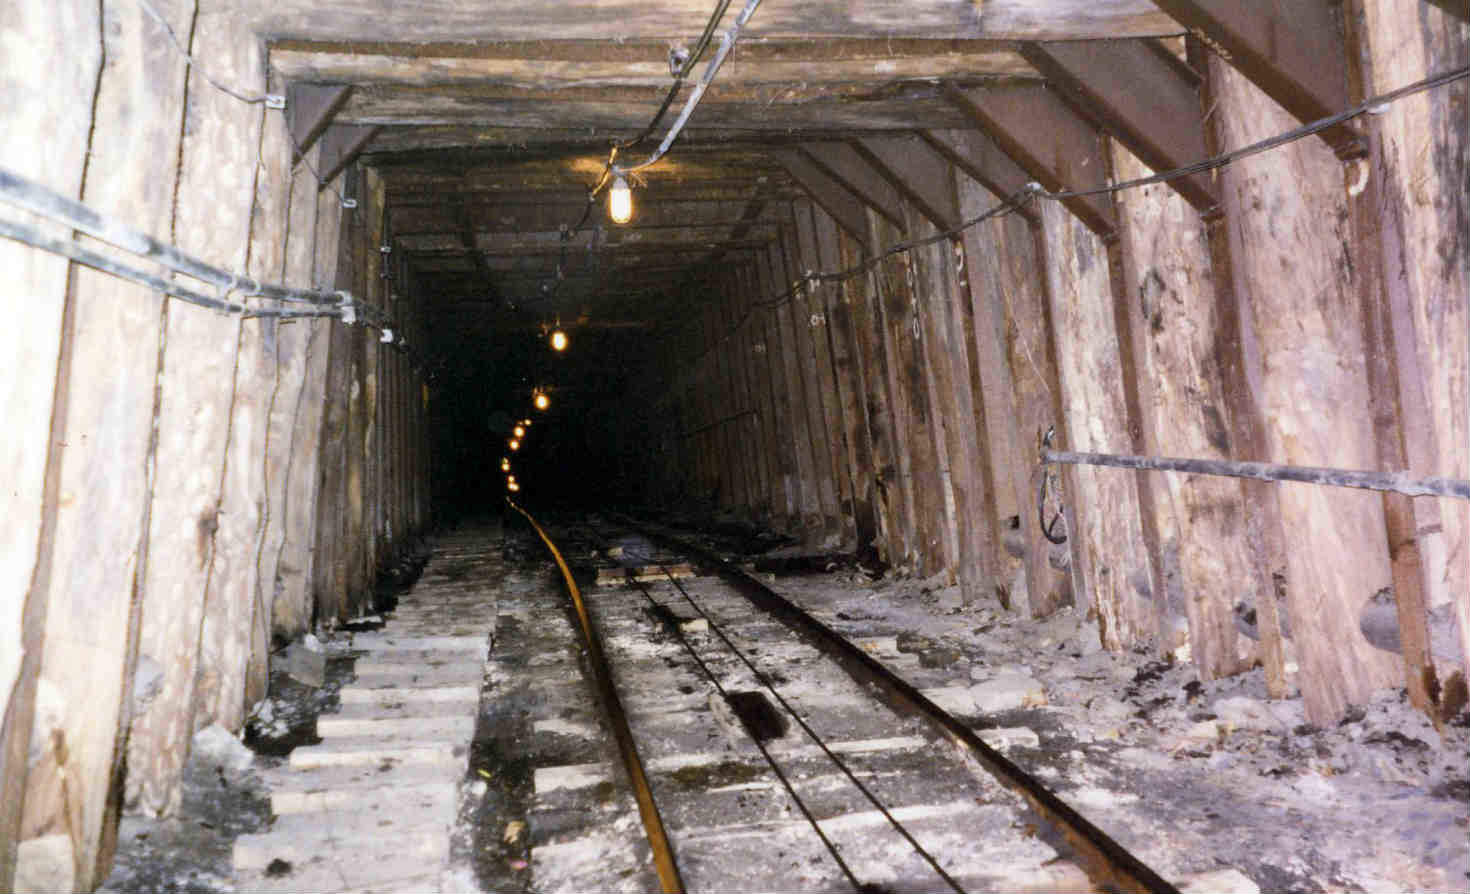 Lackawanna coal mine in Scranton, Pennsylvania